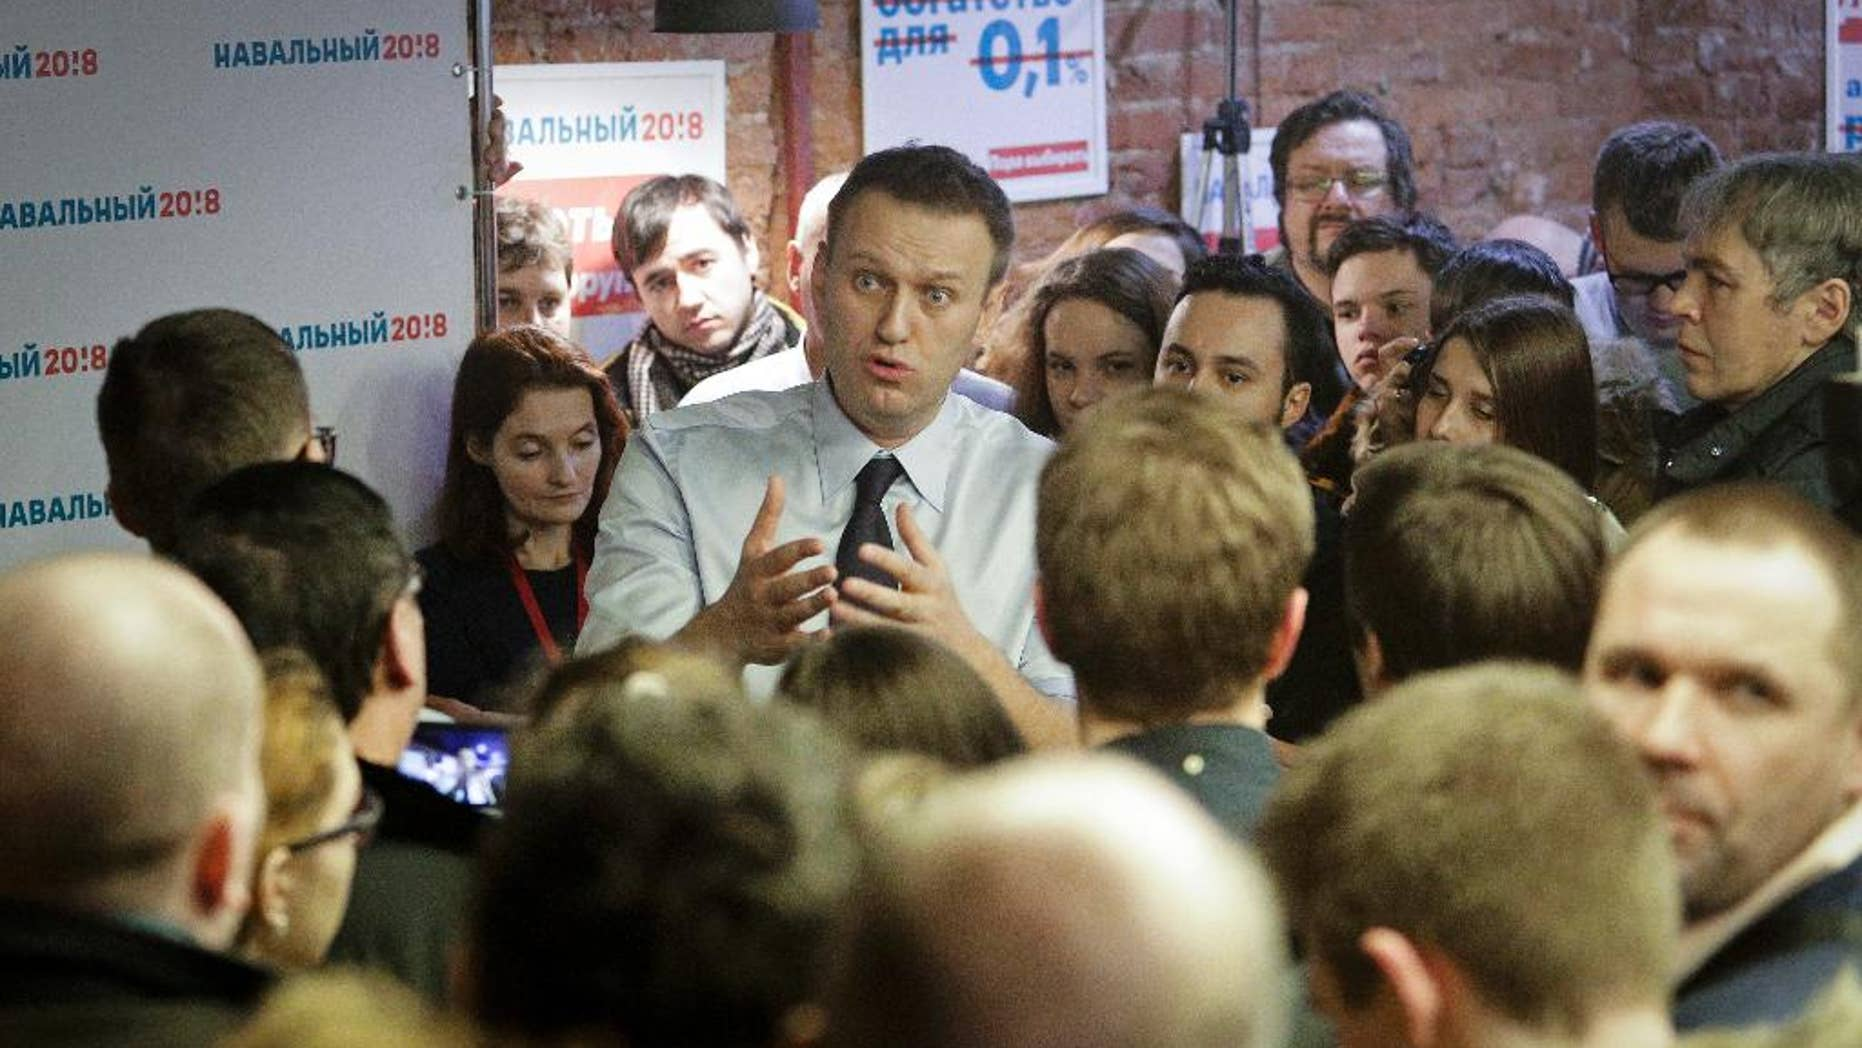 Russian opposition leader Alexei Navalny speaking with supporters at the opening of his campaign office in St. Petersburg last Saturday.